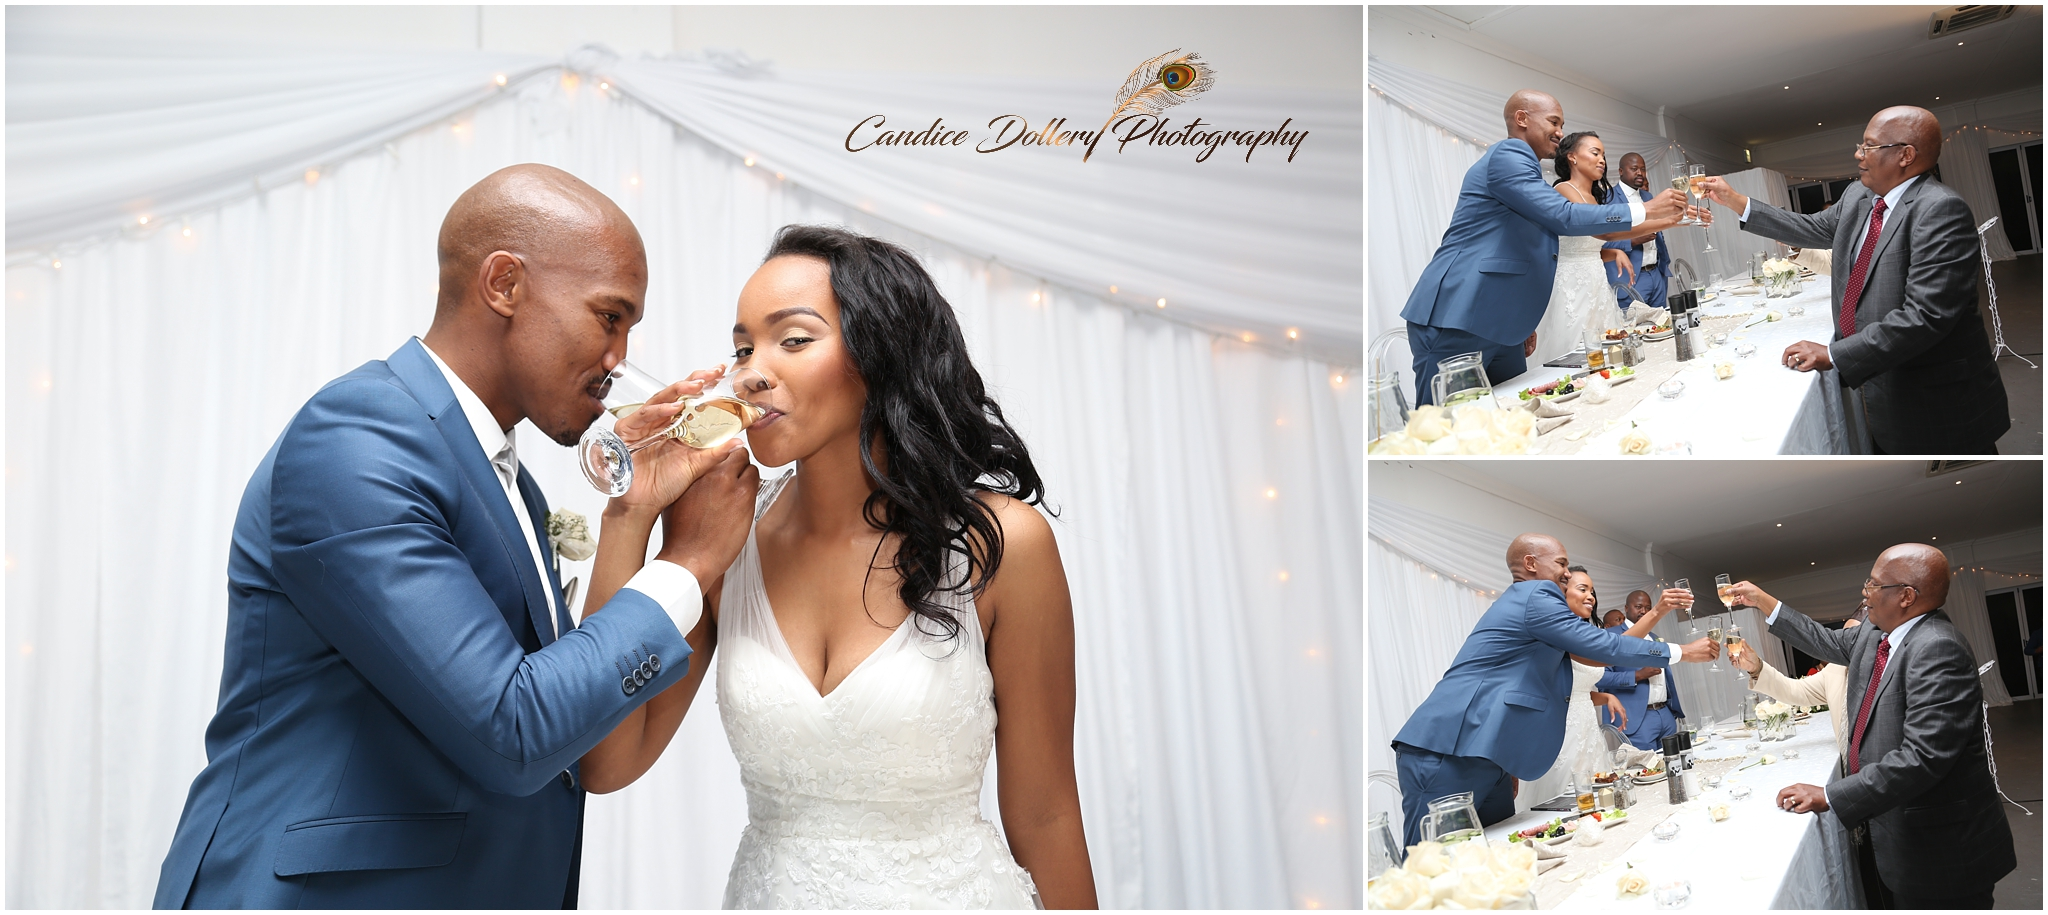 lelethu-kgotsos-wedding-candice-dollery-photography_1754